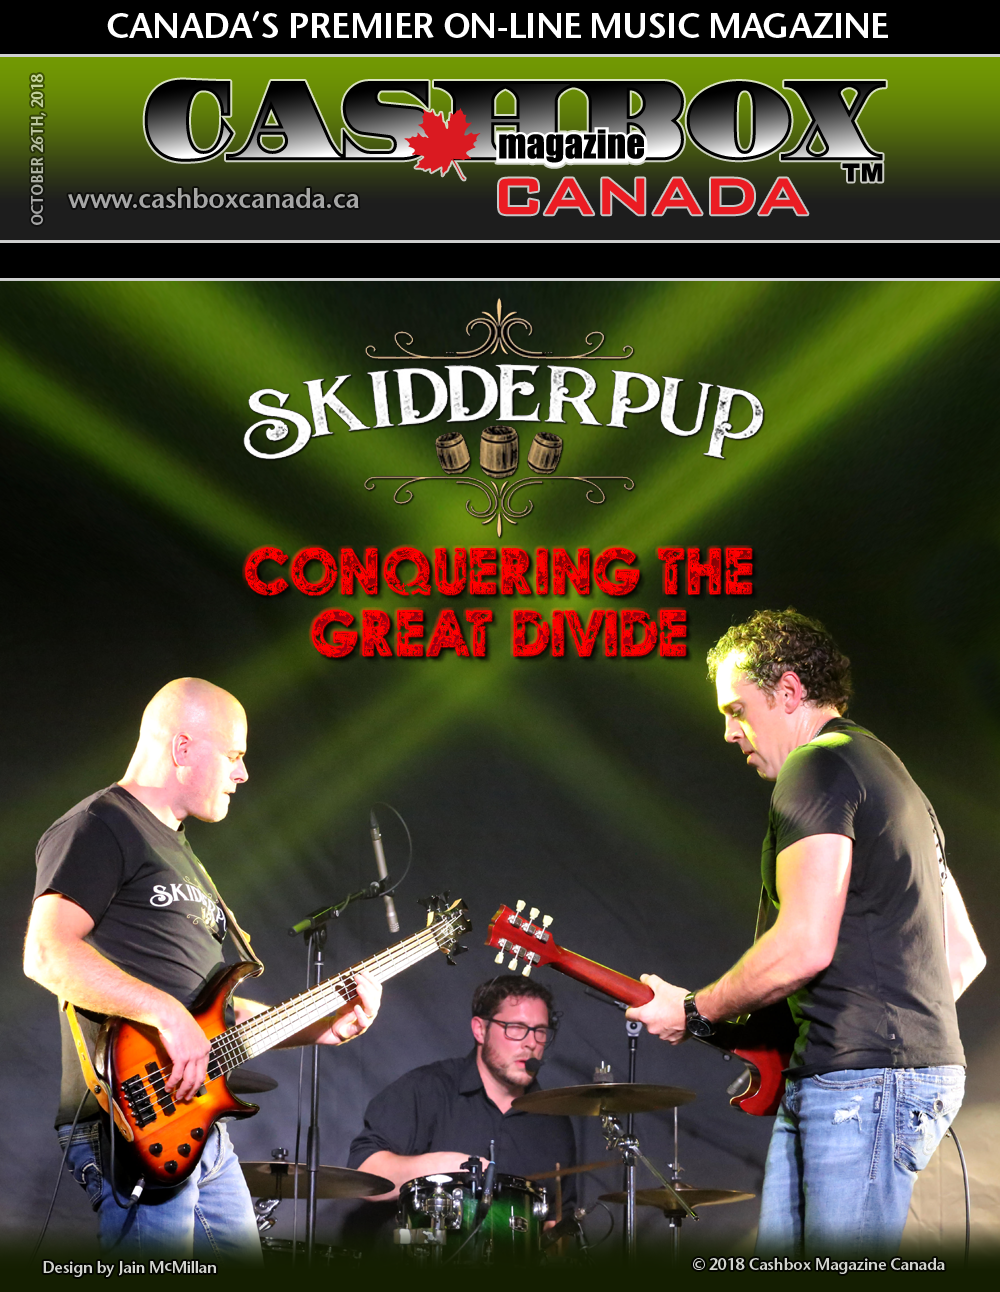 Skidderpup: Conquering The Great Divide